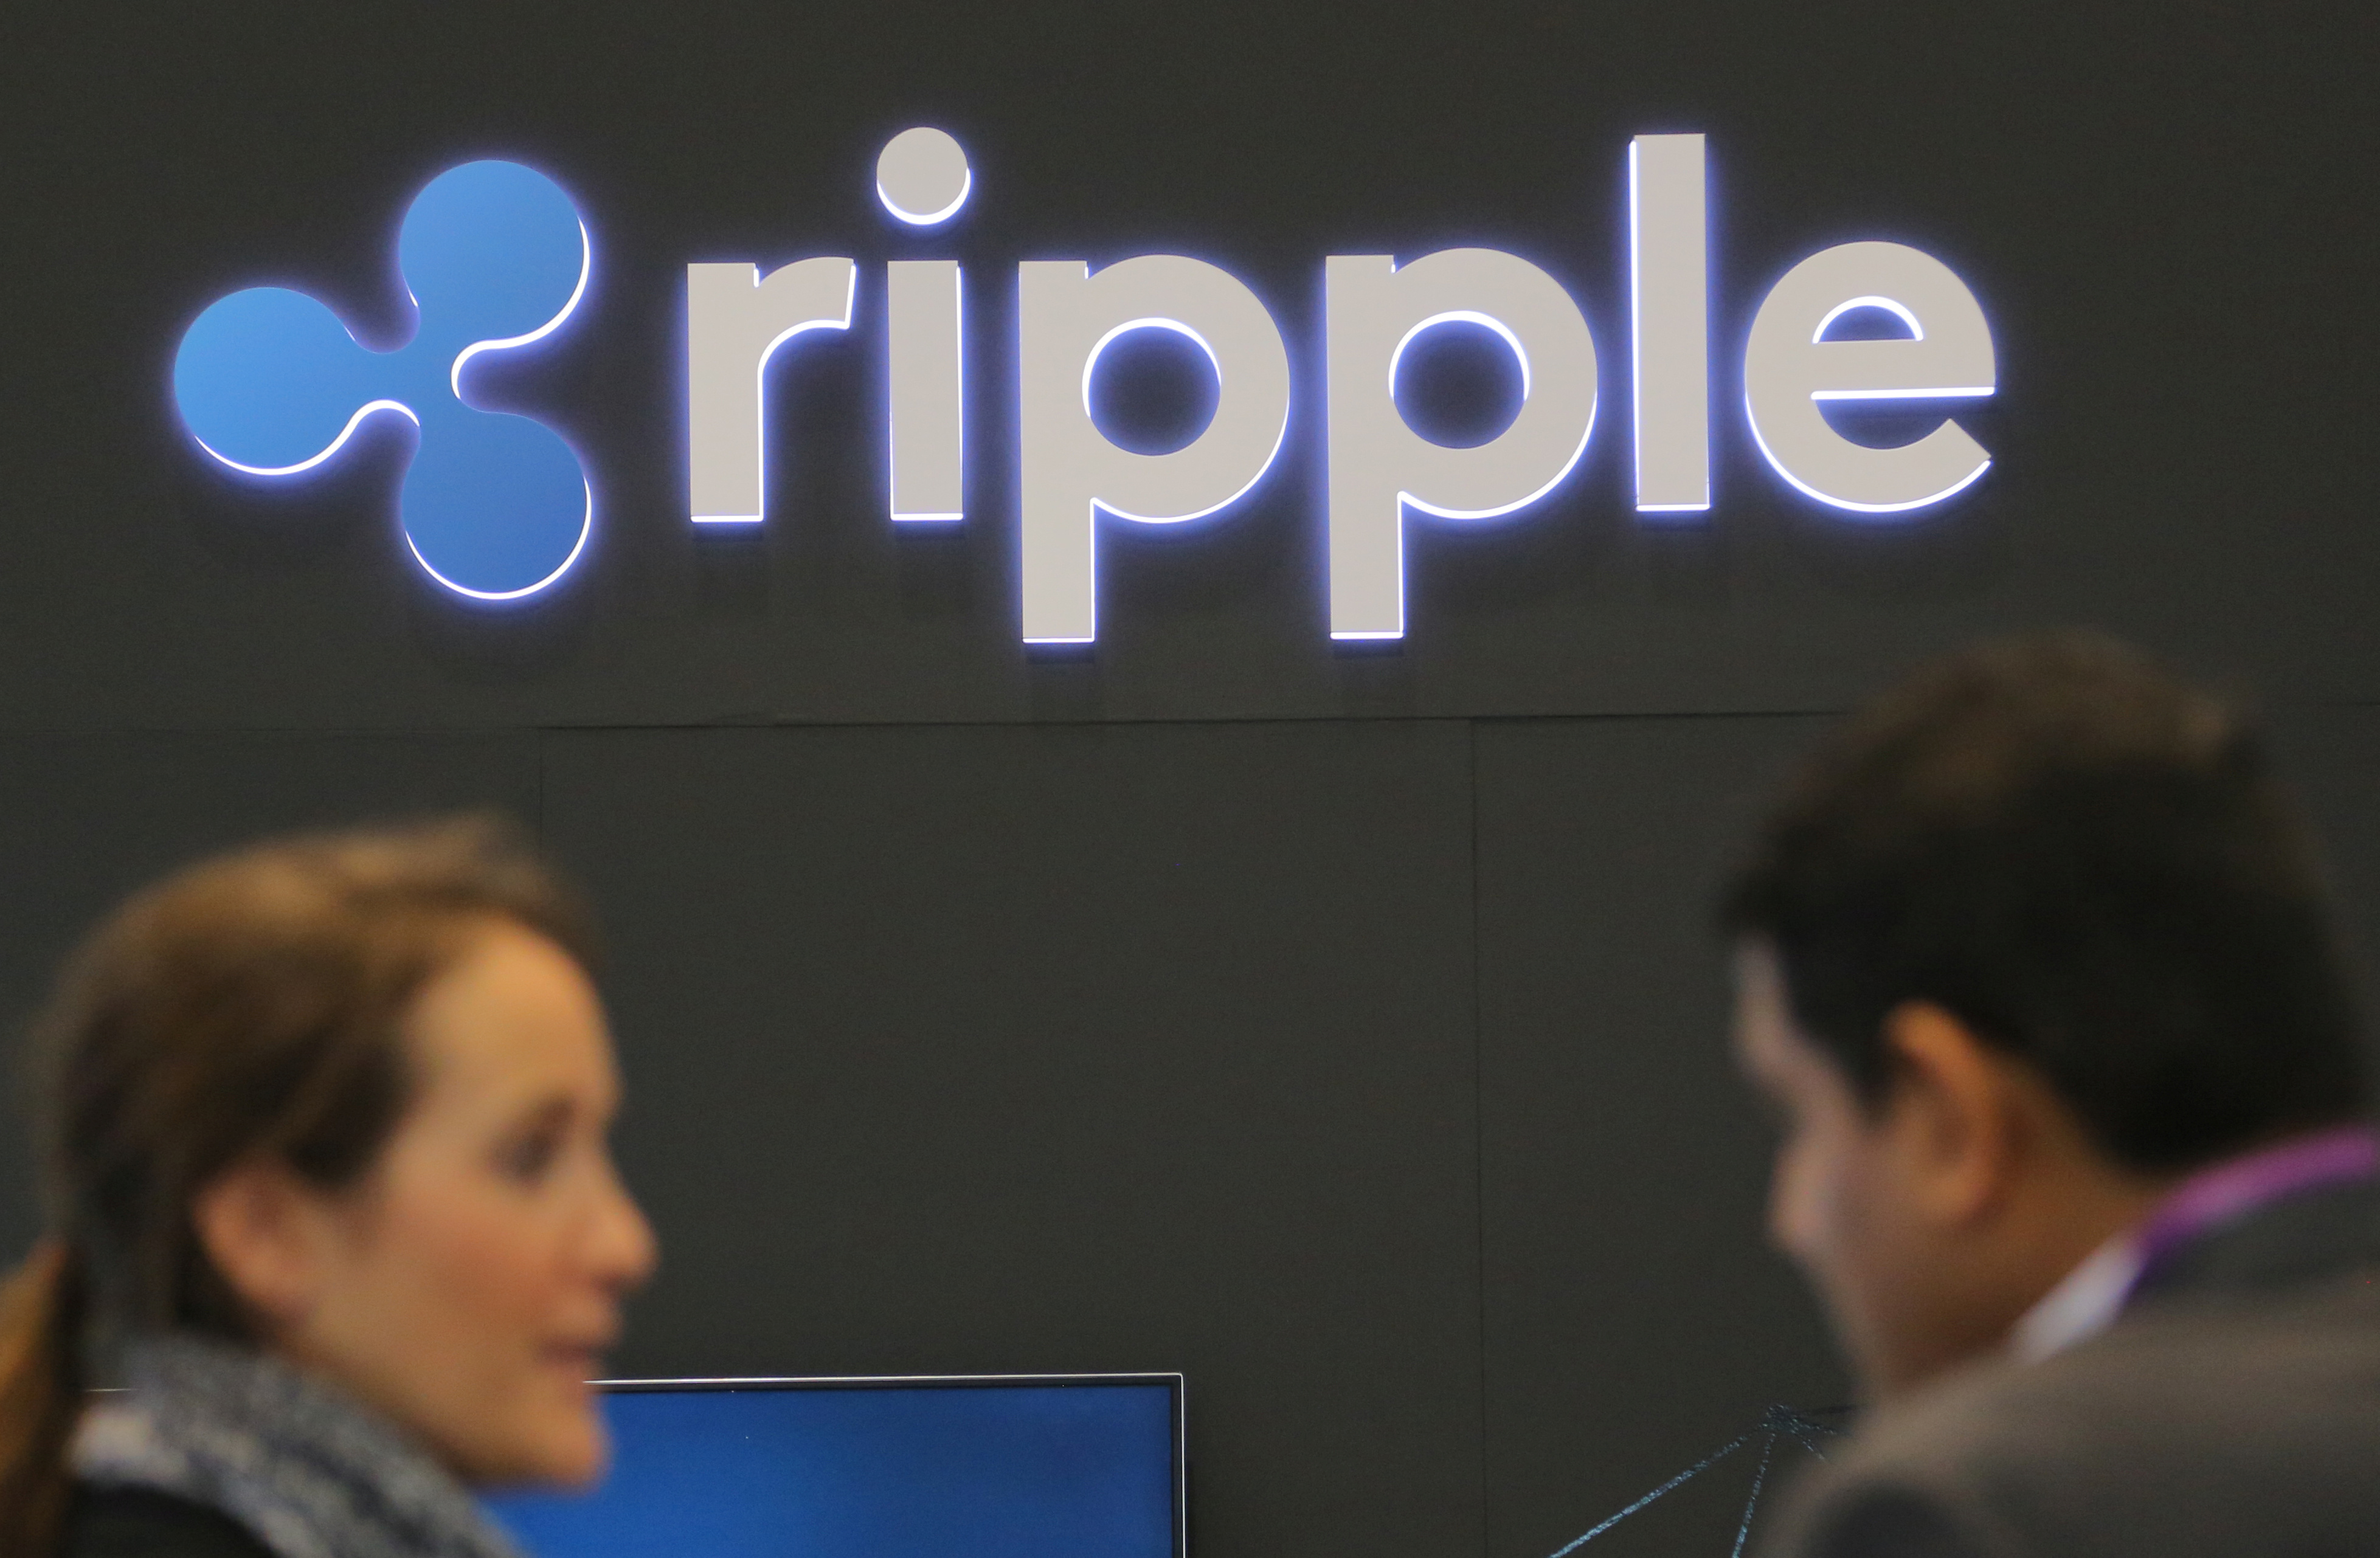 The logo of blockchain company Ripple is seen at the SIBOS banking and financial conference in Toronto, Ontario, Canada October 19, 2017. REUTERS/Chris Helgren/File Photo